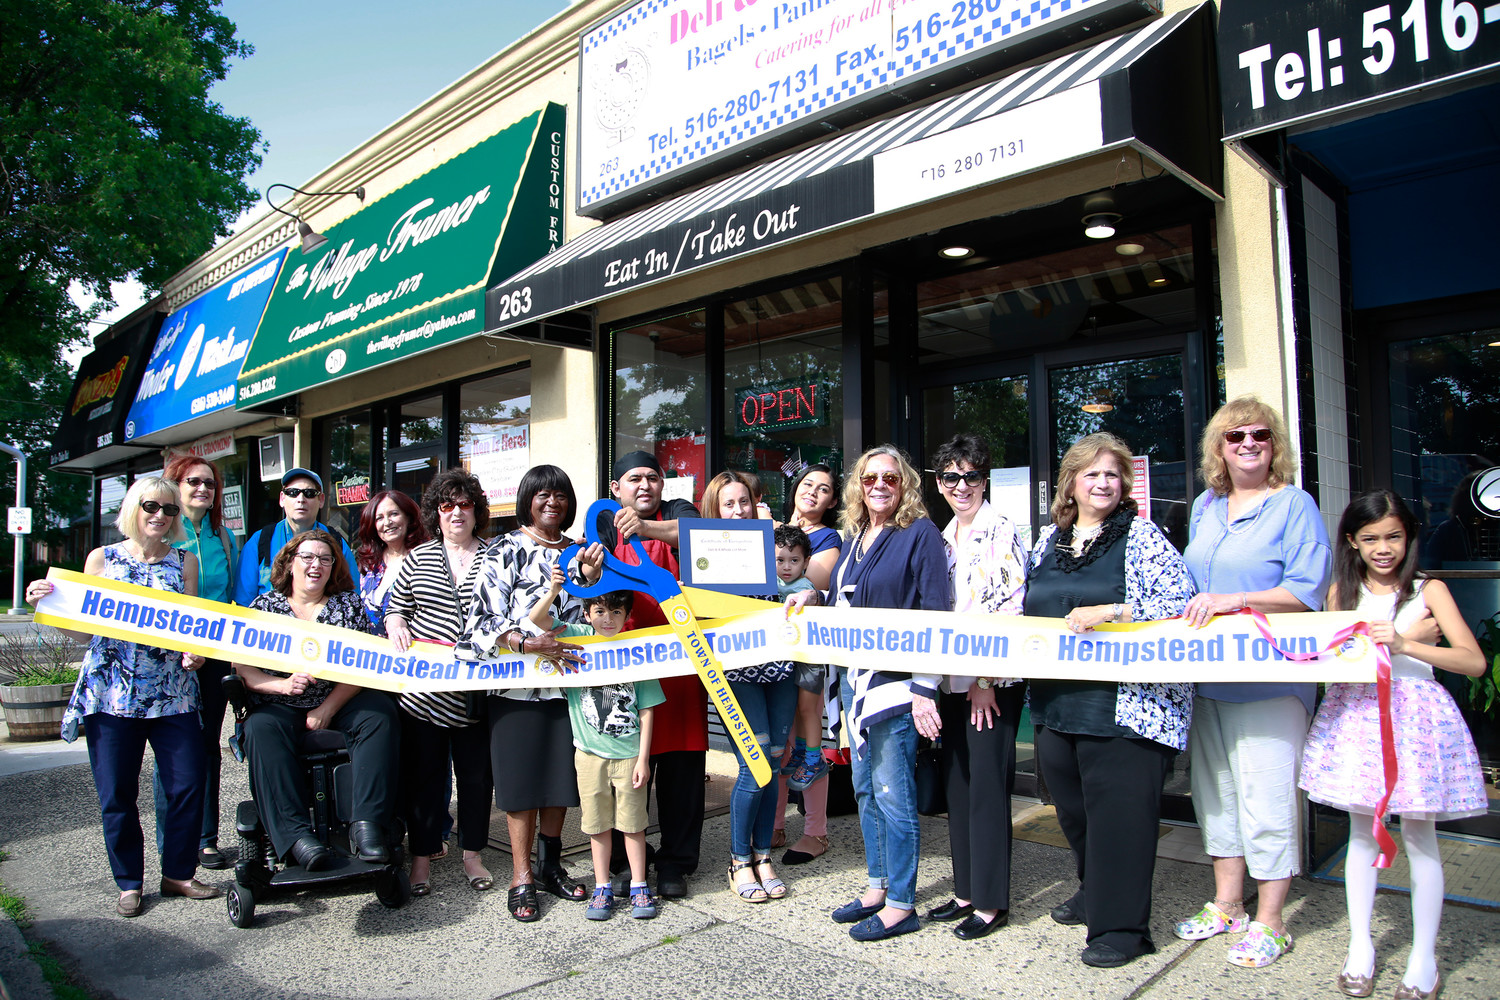 Members of the Long Island Breakfast Club, along with local elected leaders, gathered for a ribbon-cutting ceremony on June 2.